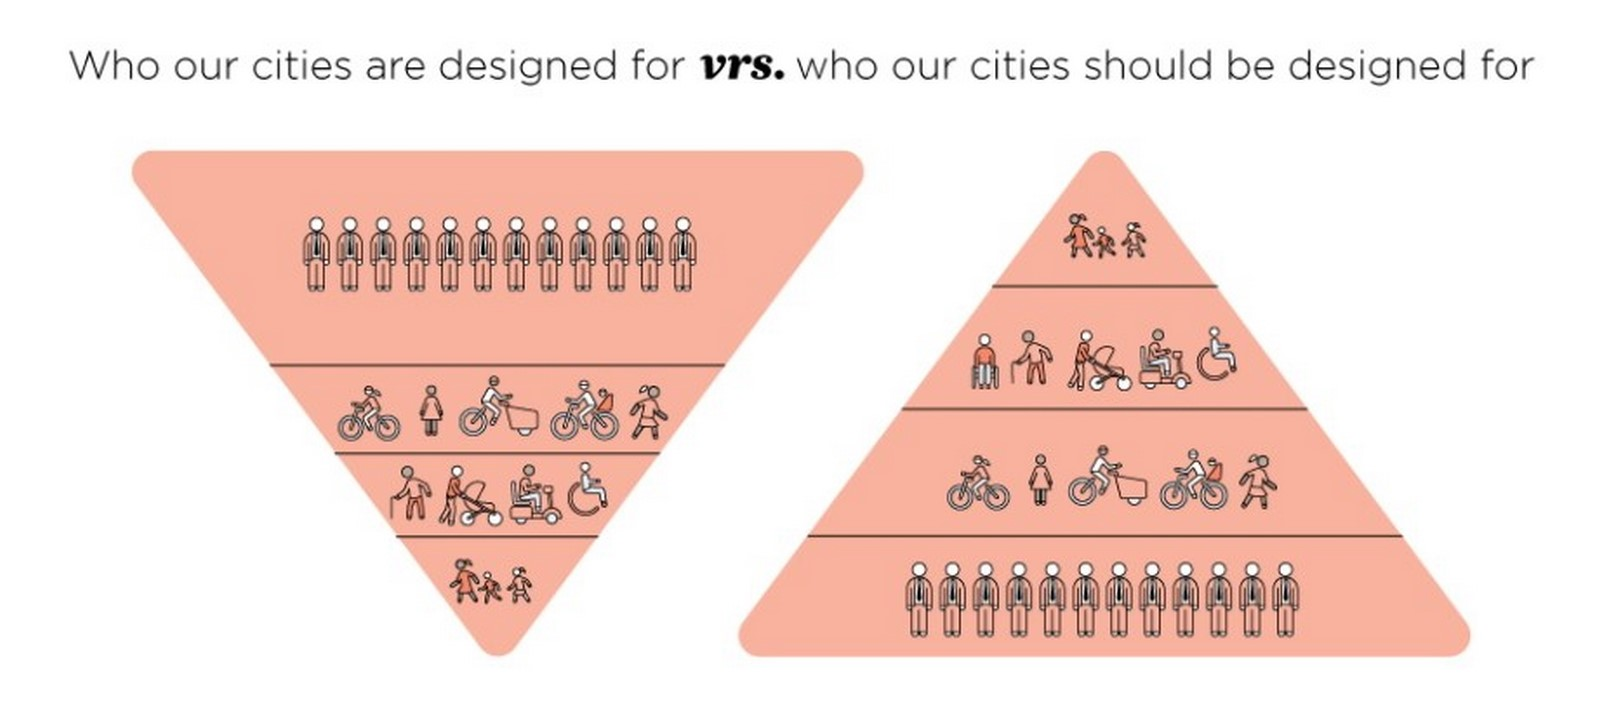 How can architecture make cities safer for women and children? - Sheet5